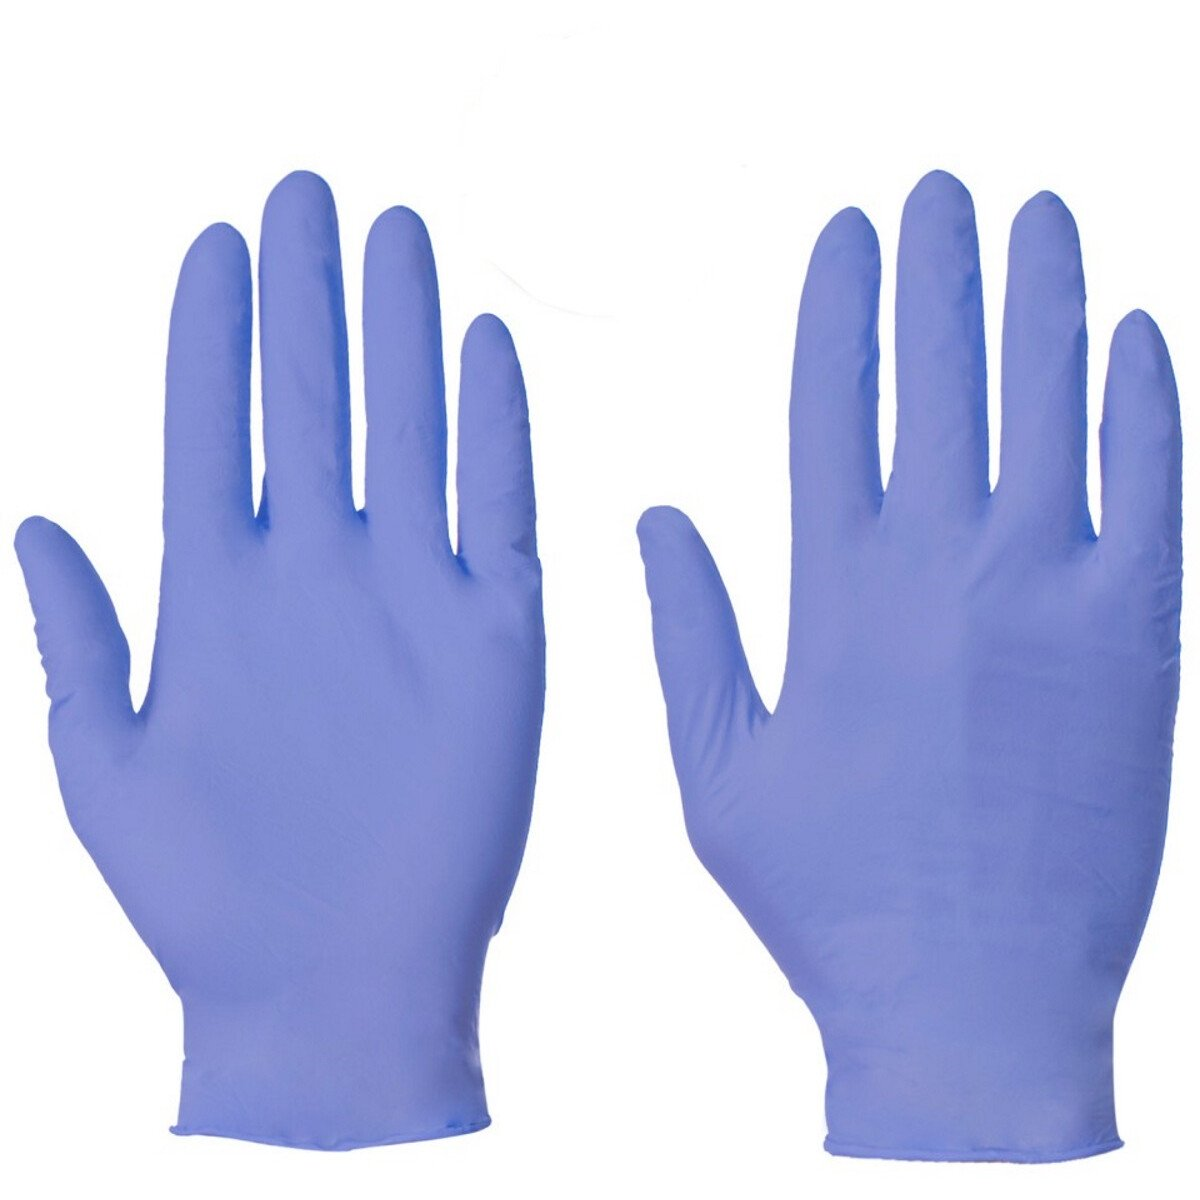 Supertouch 12111 Powderfree Nitrile Gloves (Box of 100) Size Small (7)